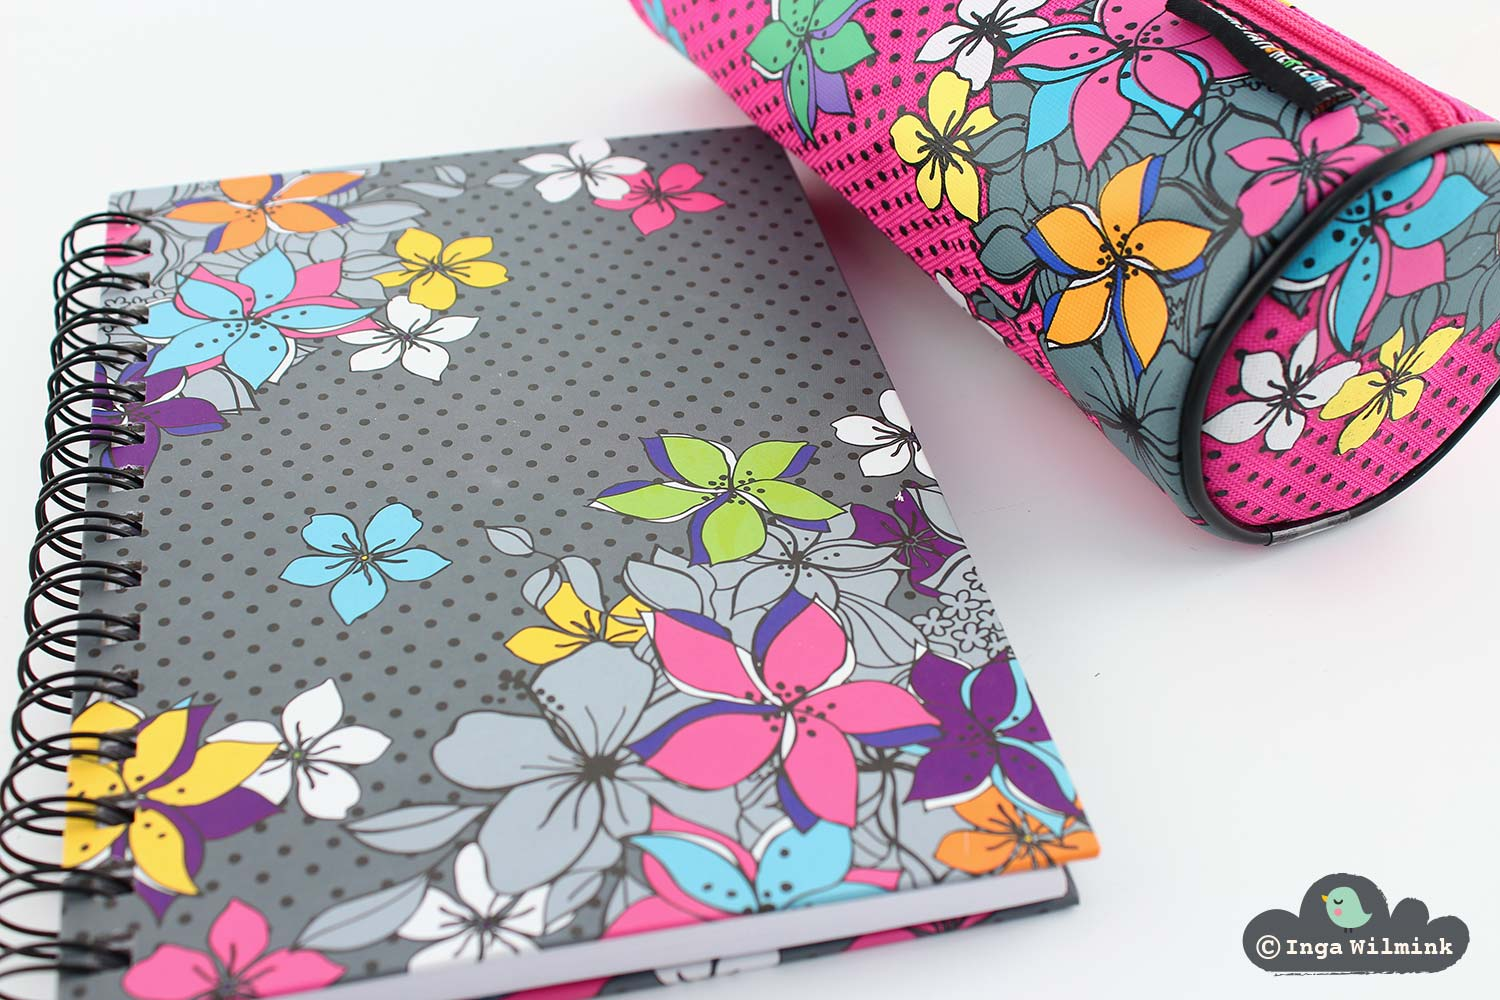 Floral Stationery - Surface Pattern Design by Inga Wilmink